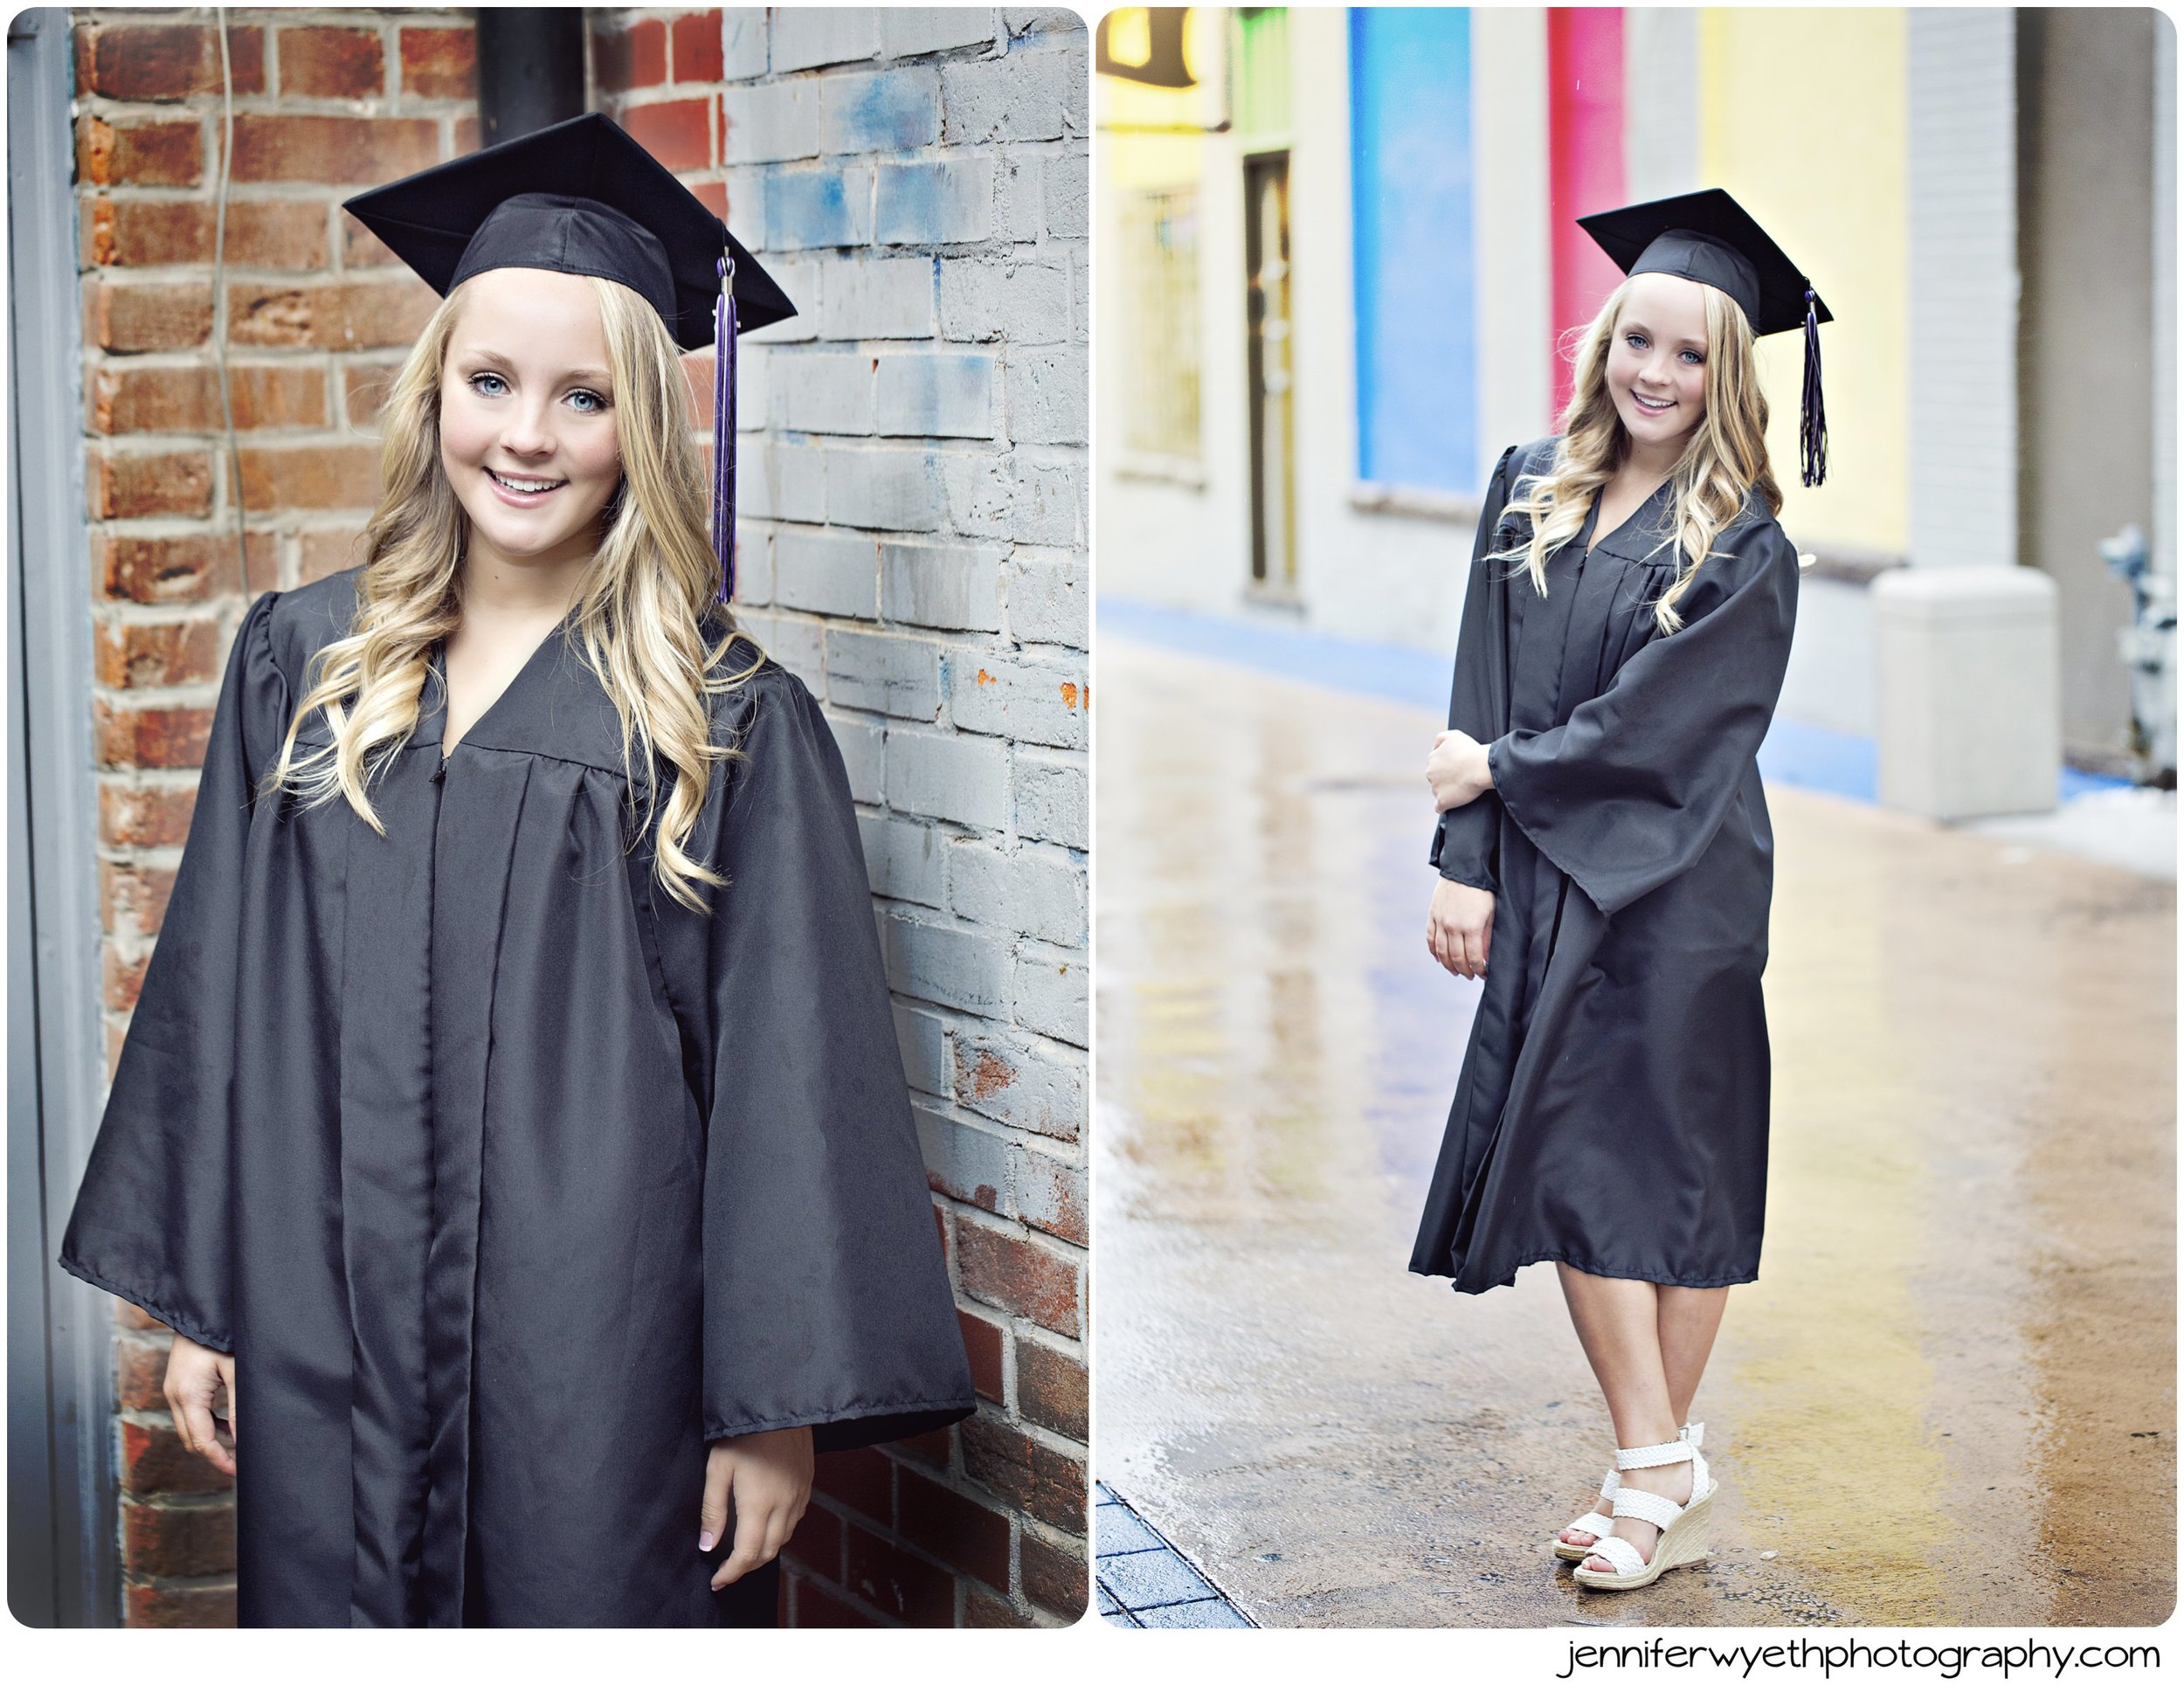 black cap and gown for high school graduation